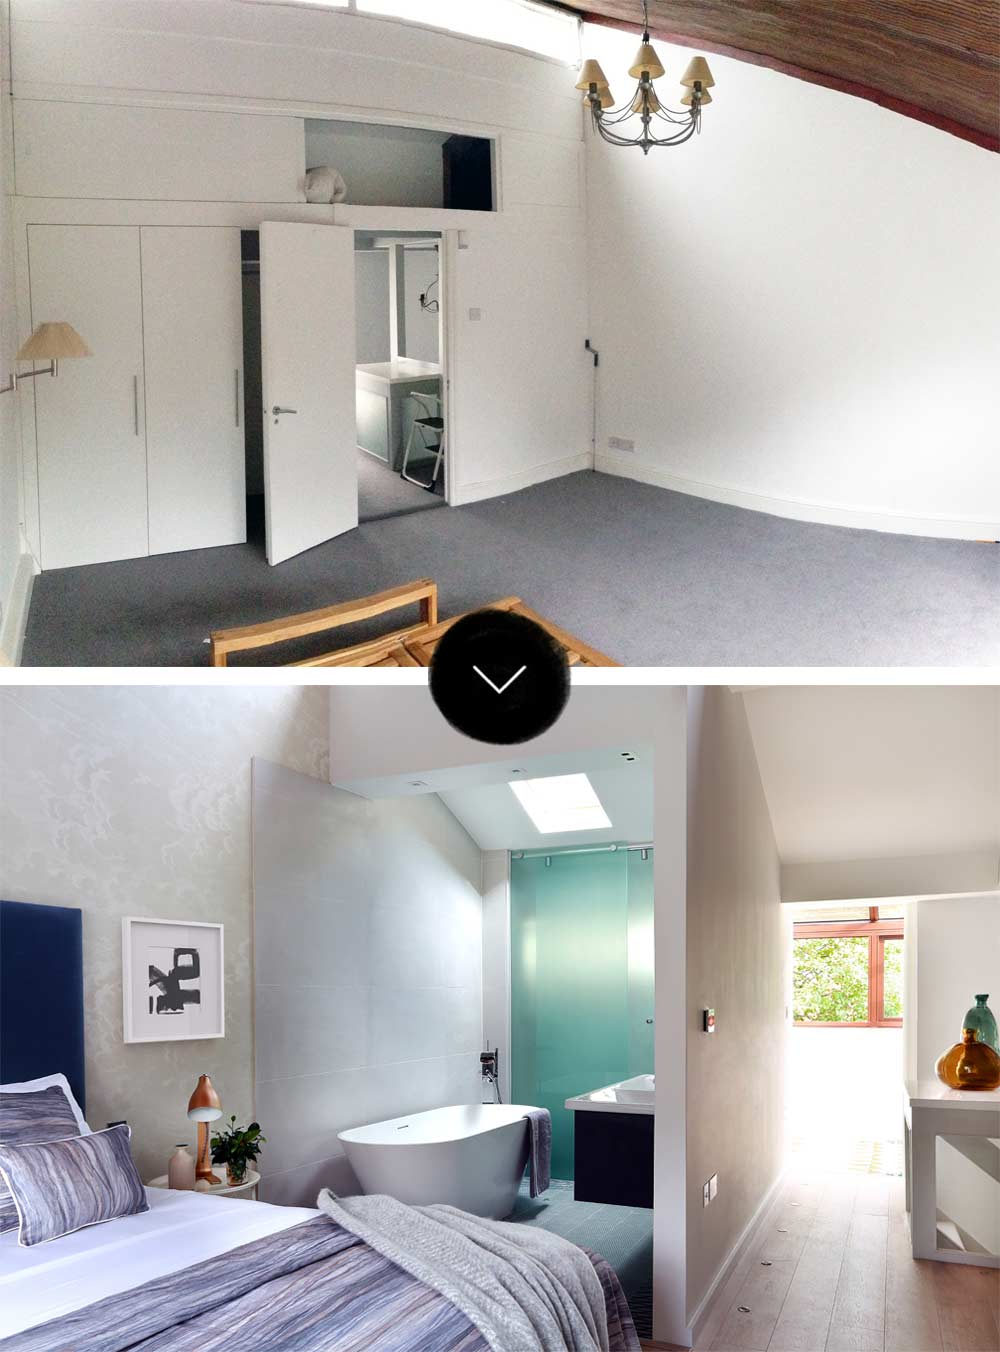 Before & After: Southwood Home Renovation by LLI Design in London, on Design*Sponge